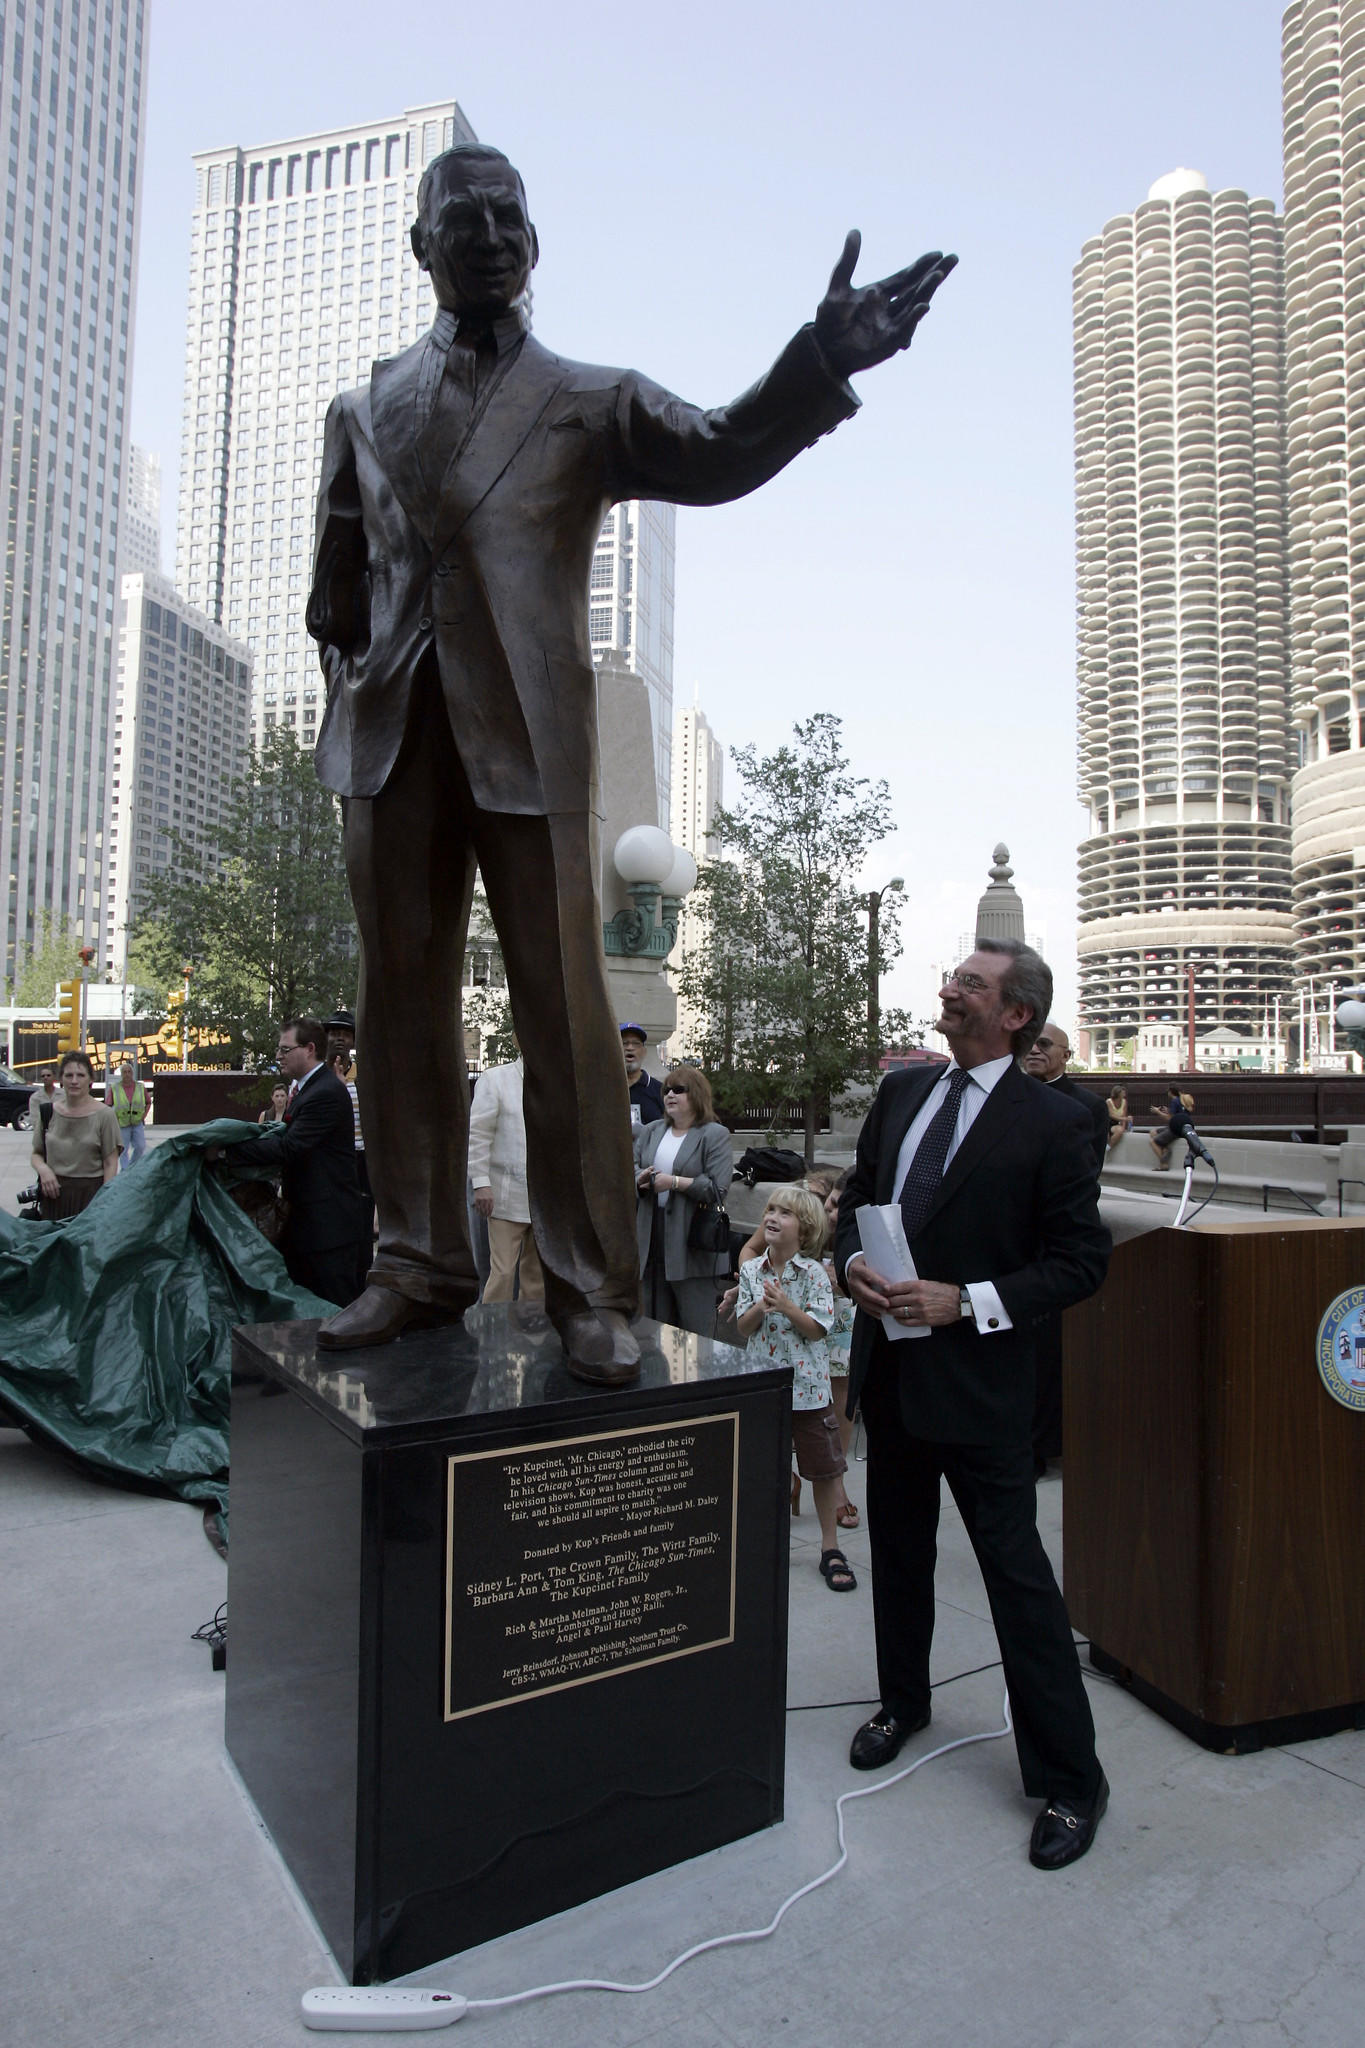 Jerry Kupcinet, son of Irv Kupcinet, looks up at a nine-foot bronze statue of his father installed on Wacker Drive.